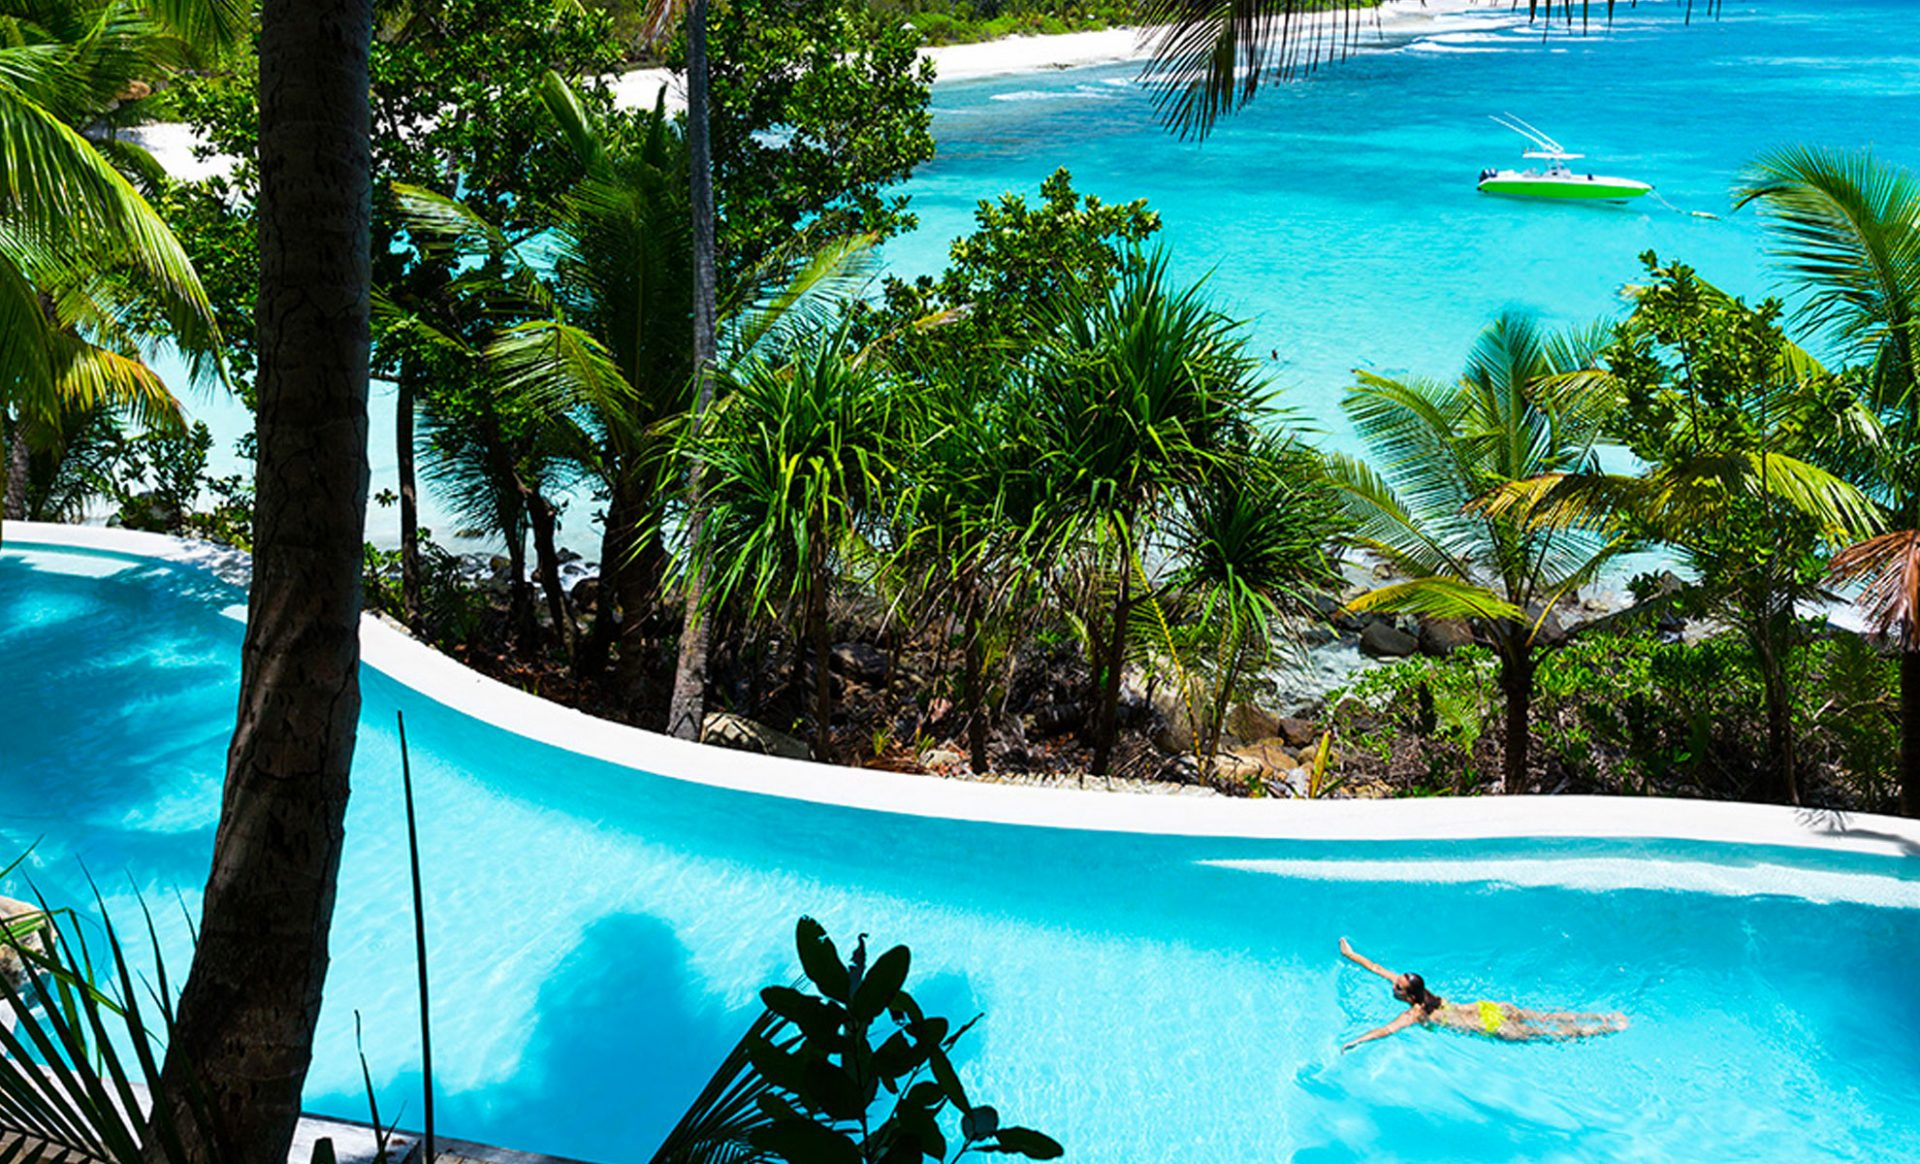 North Island Luxury Seychelles Holiday All Inclusive